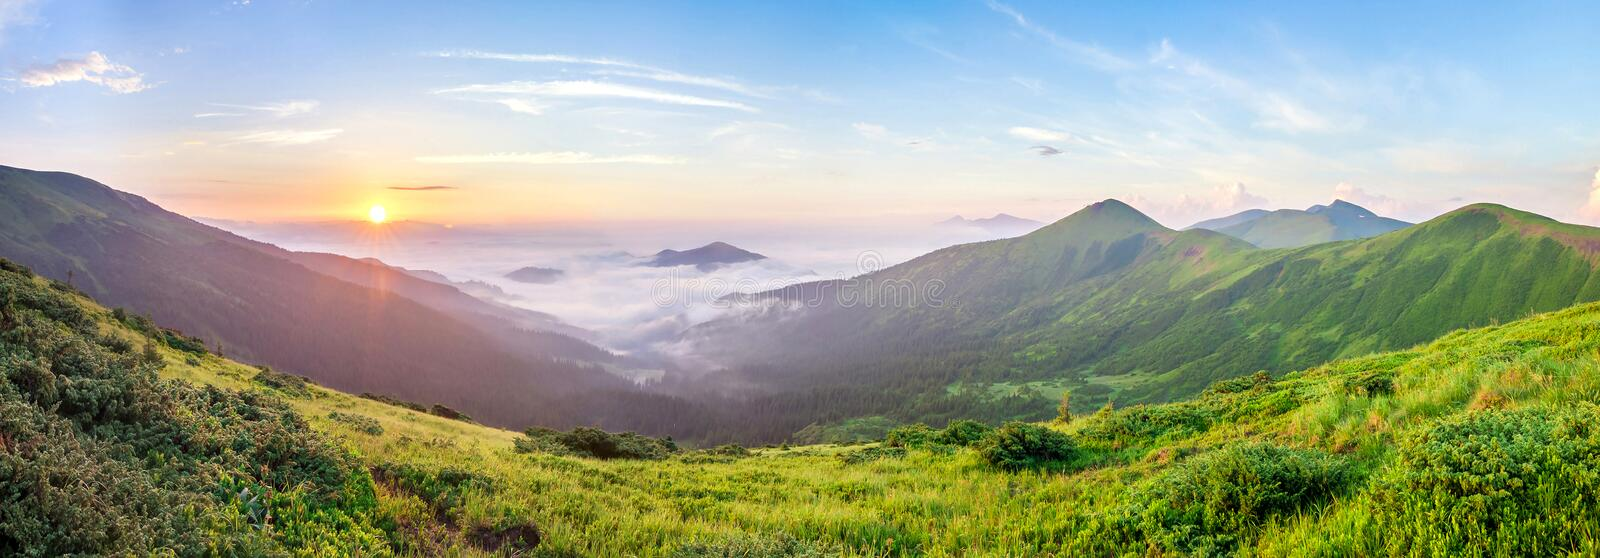 Beautiful sunrise in mountains with white fog below panorama royalty free stock photography